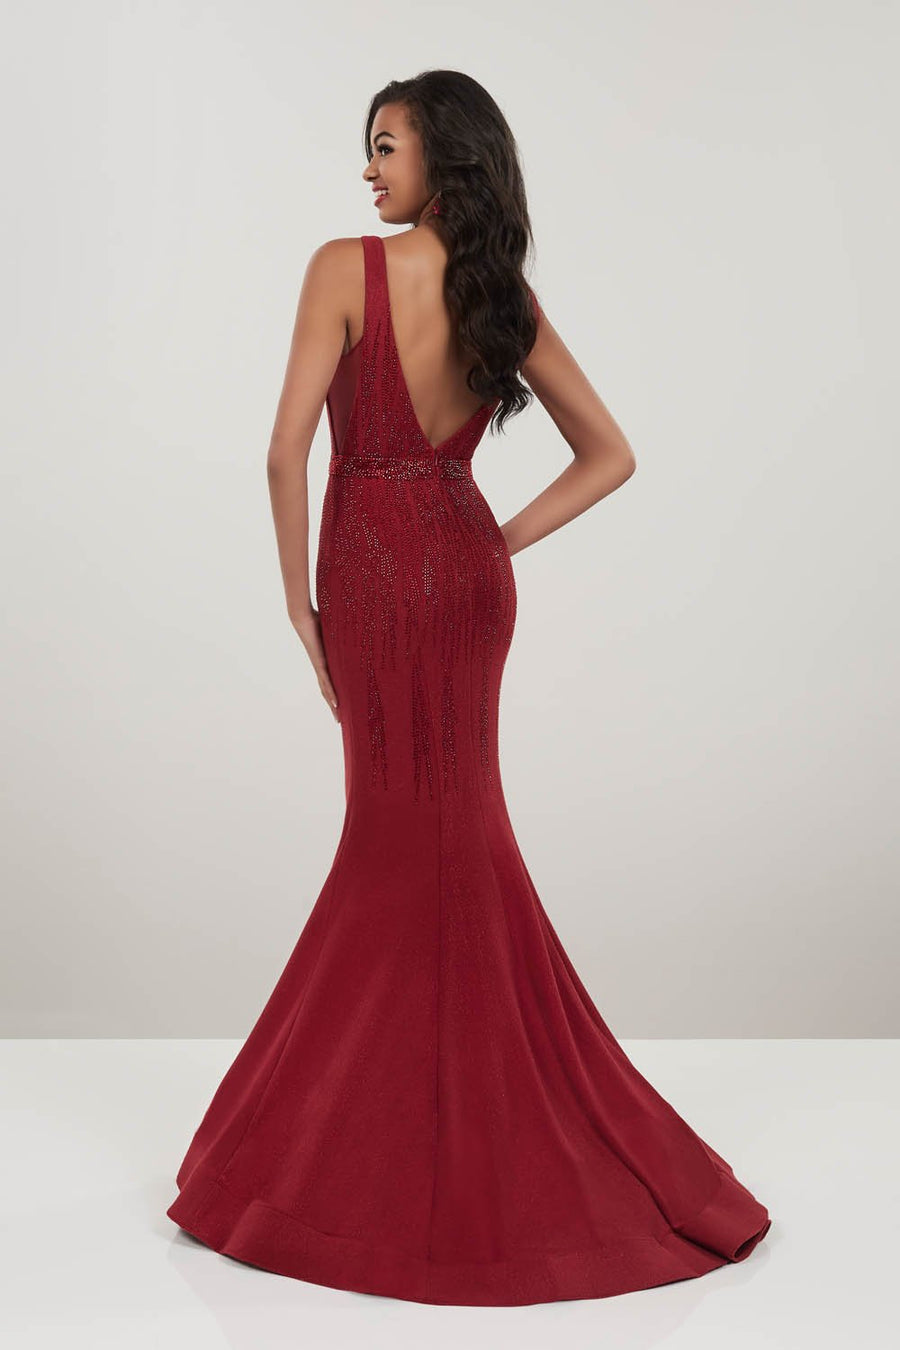 Panoply 14946 prom dress images.  Panoply 14946 is available in these colors: Emerald, Wine.